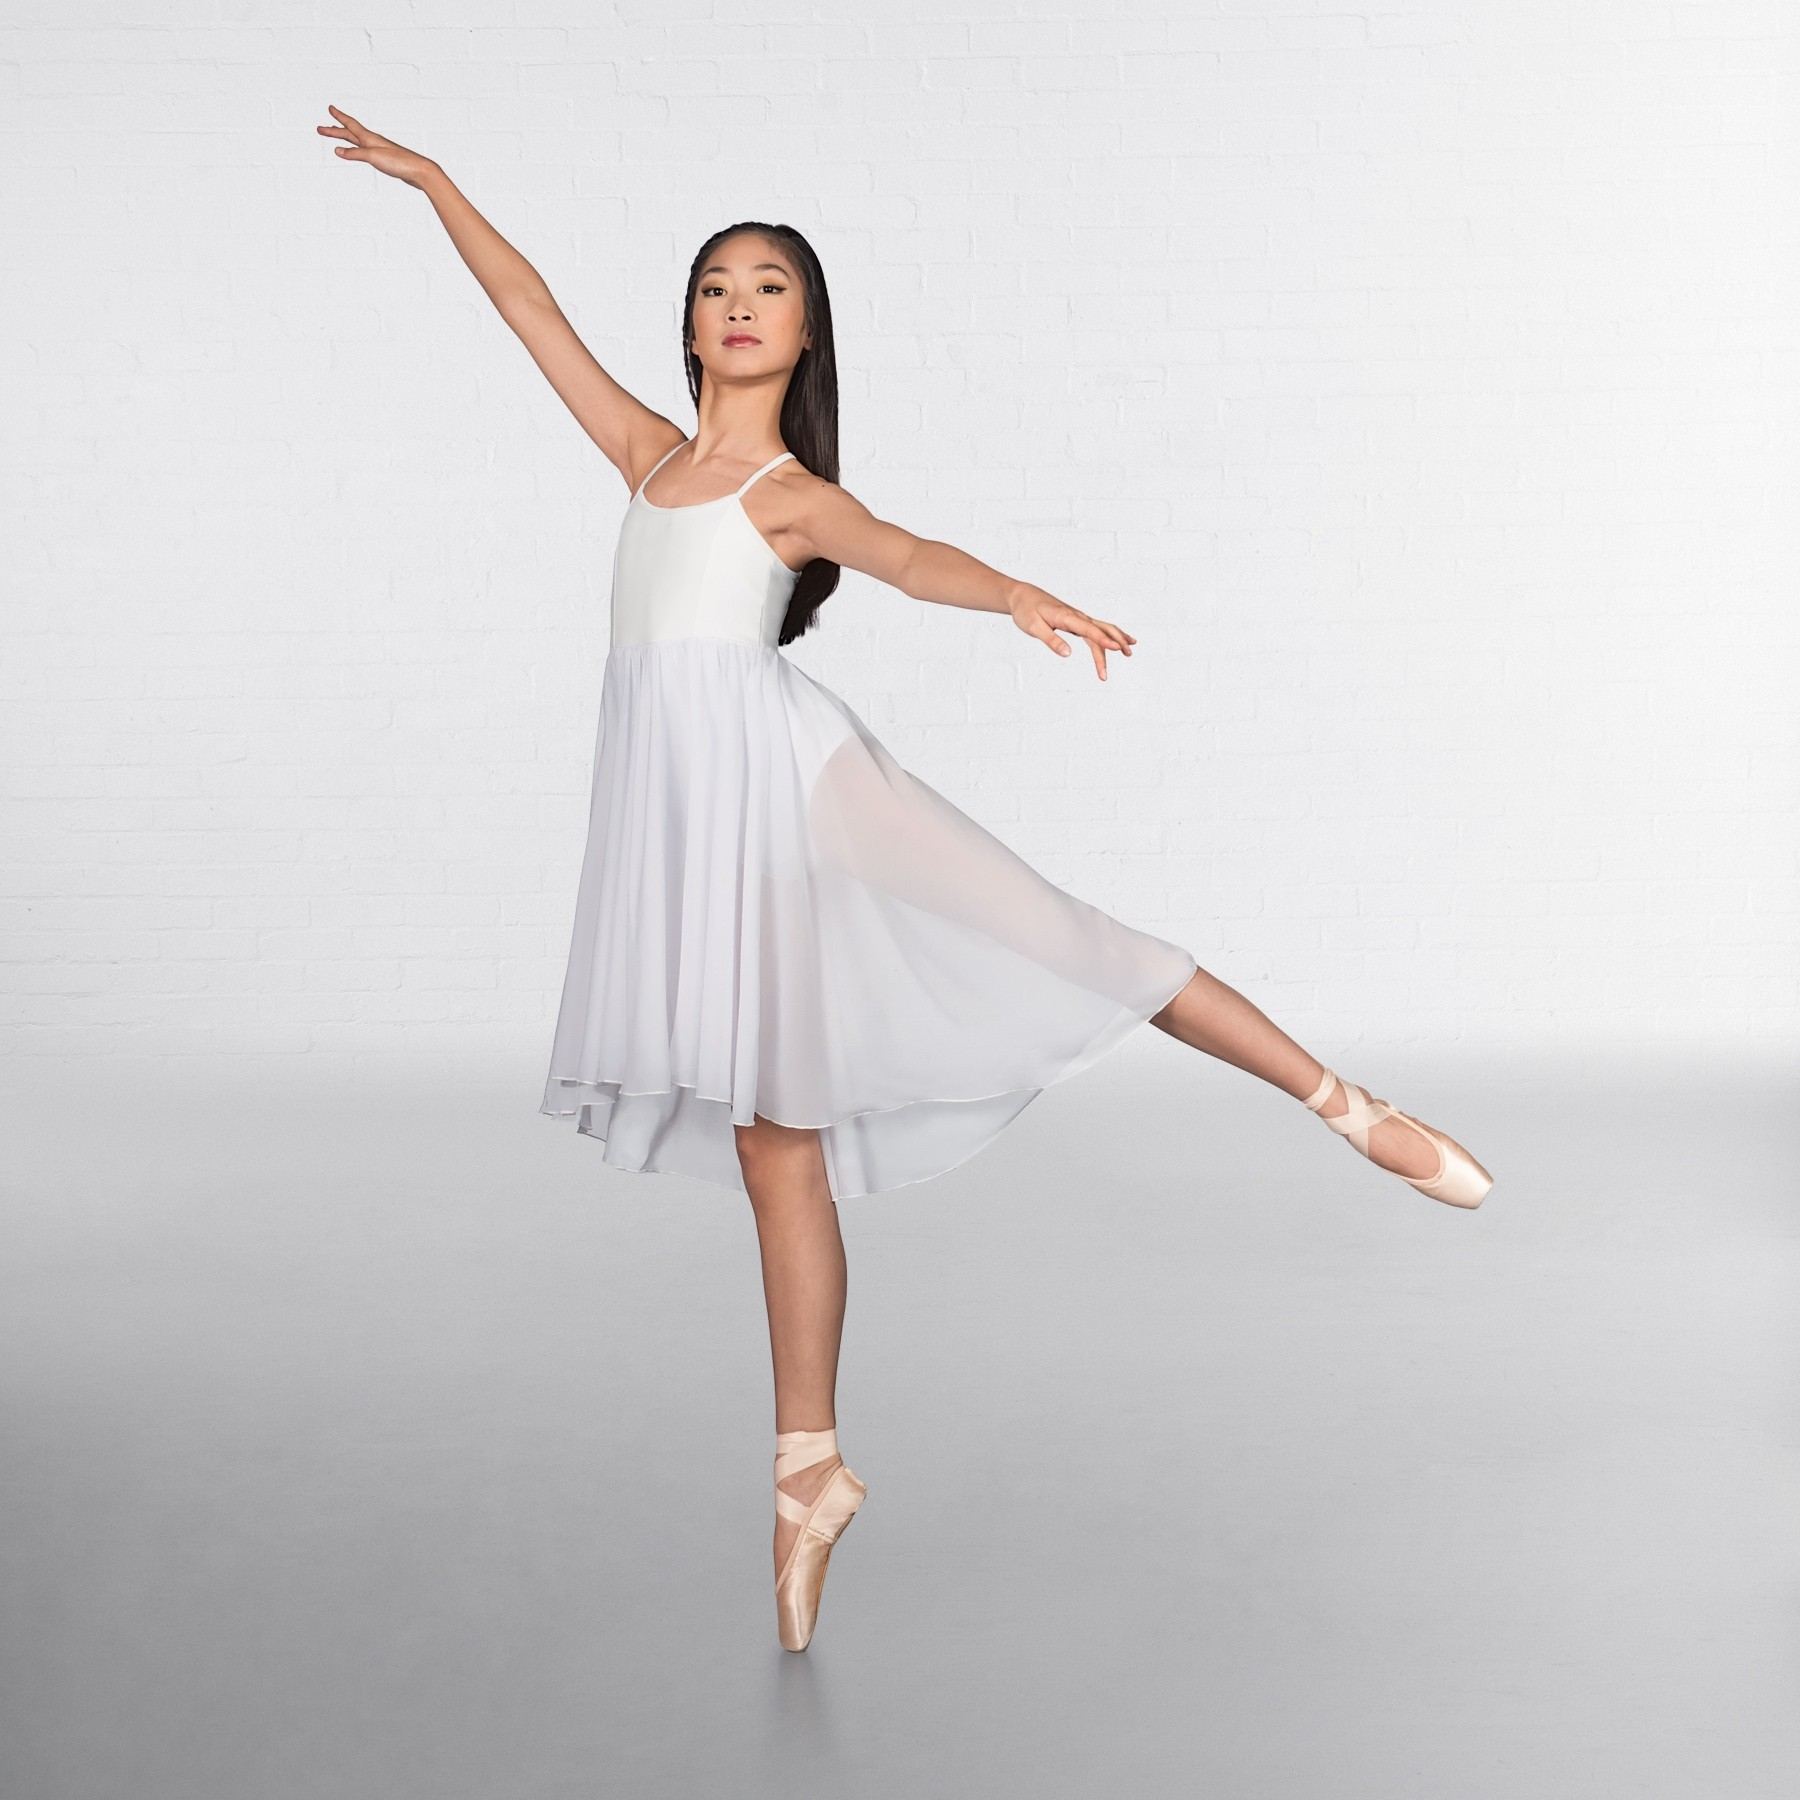 1st Position Camisole Skirted Leotard White Small Adult